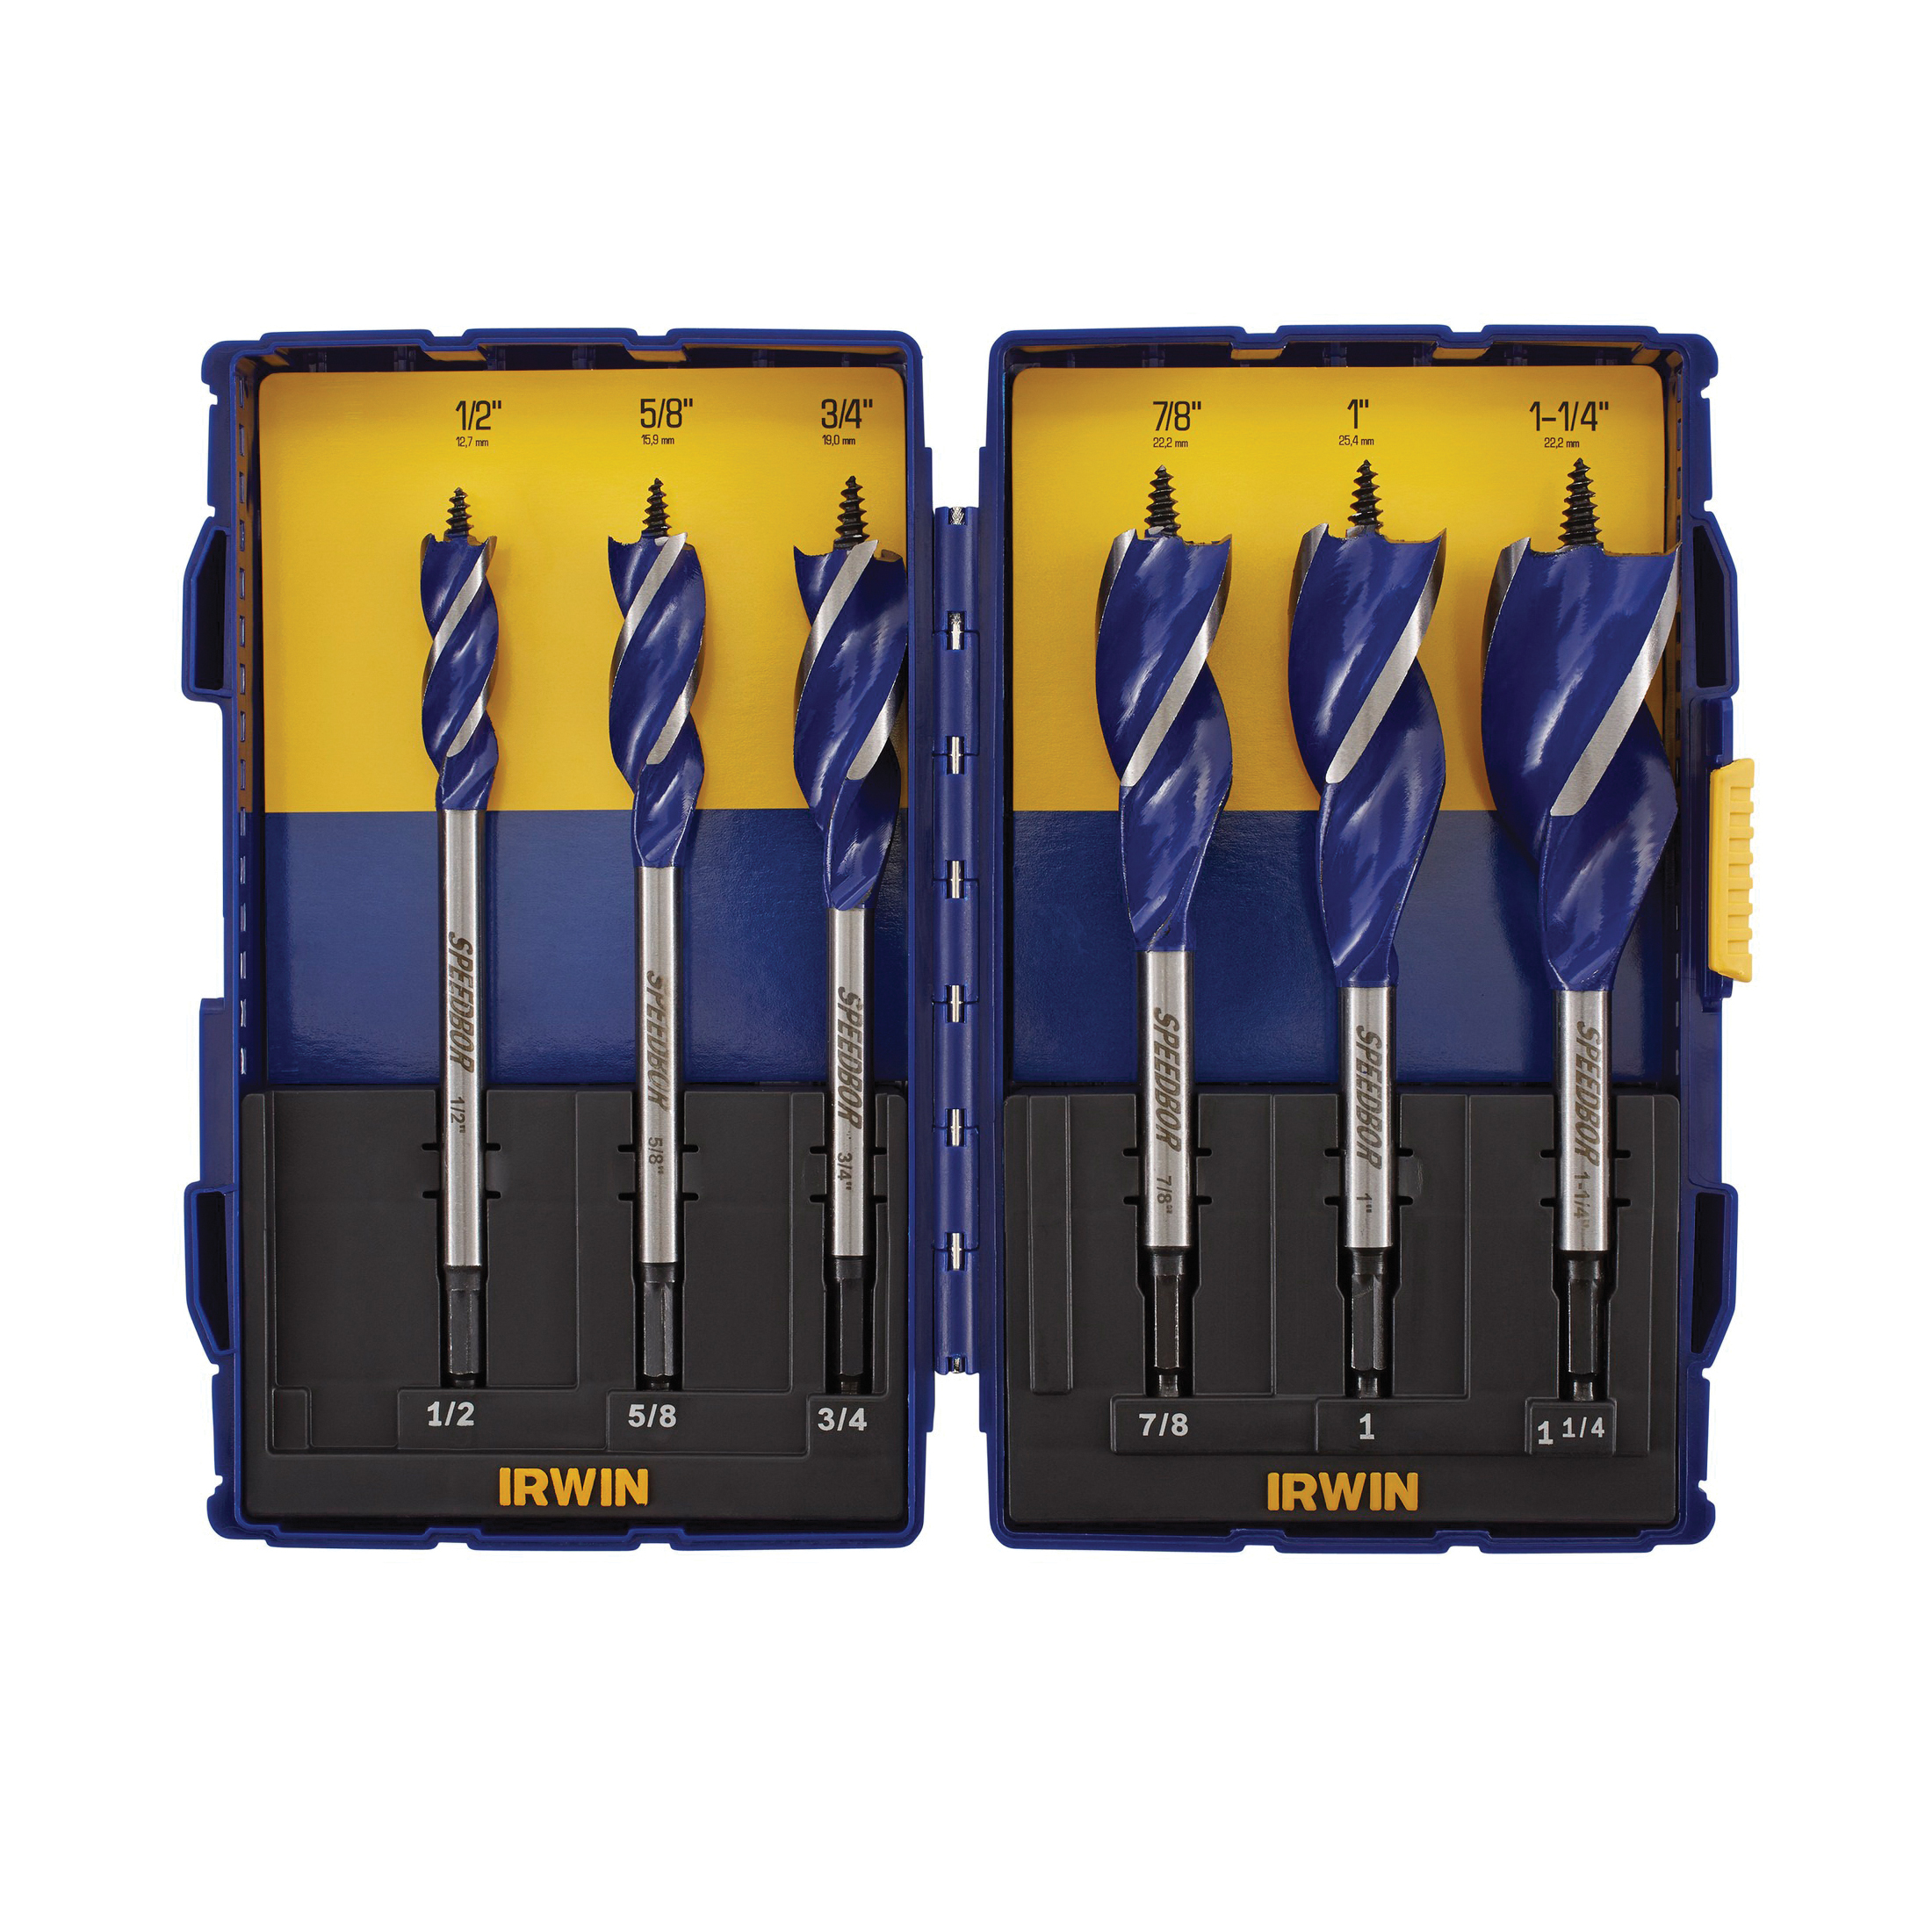 Irwin® Speedbor® Blue-Groove™ 1792761 Standard Length Spade Bit Set, Imperial, 1/4 in Min Drill Bit, 1-1/2 in Max Drill Bit, 17 Pieces, For Use With Quick-Change Chucks, HSS, Bright